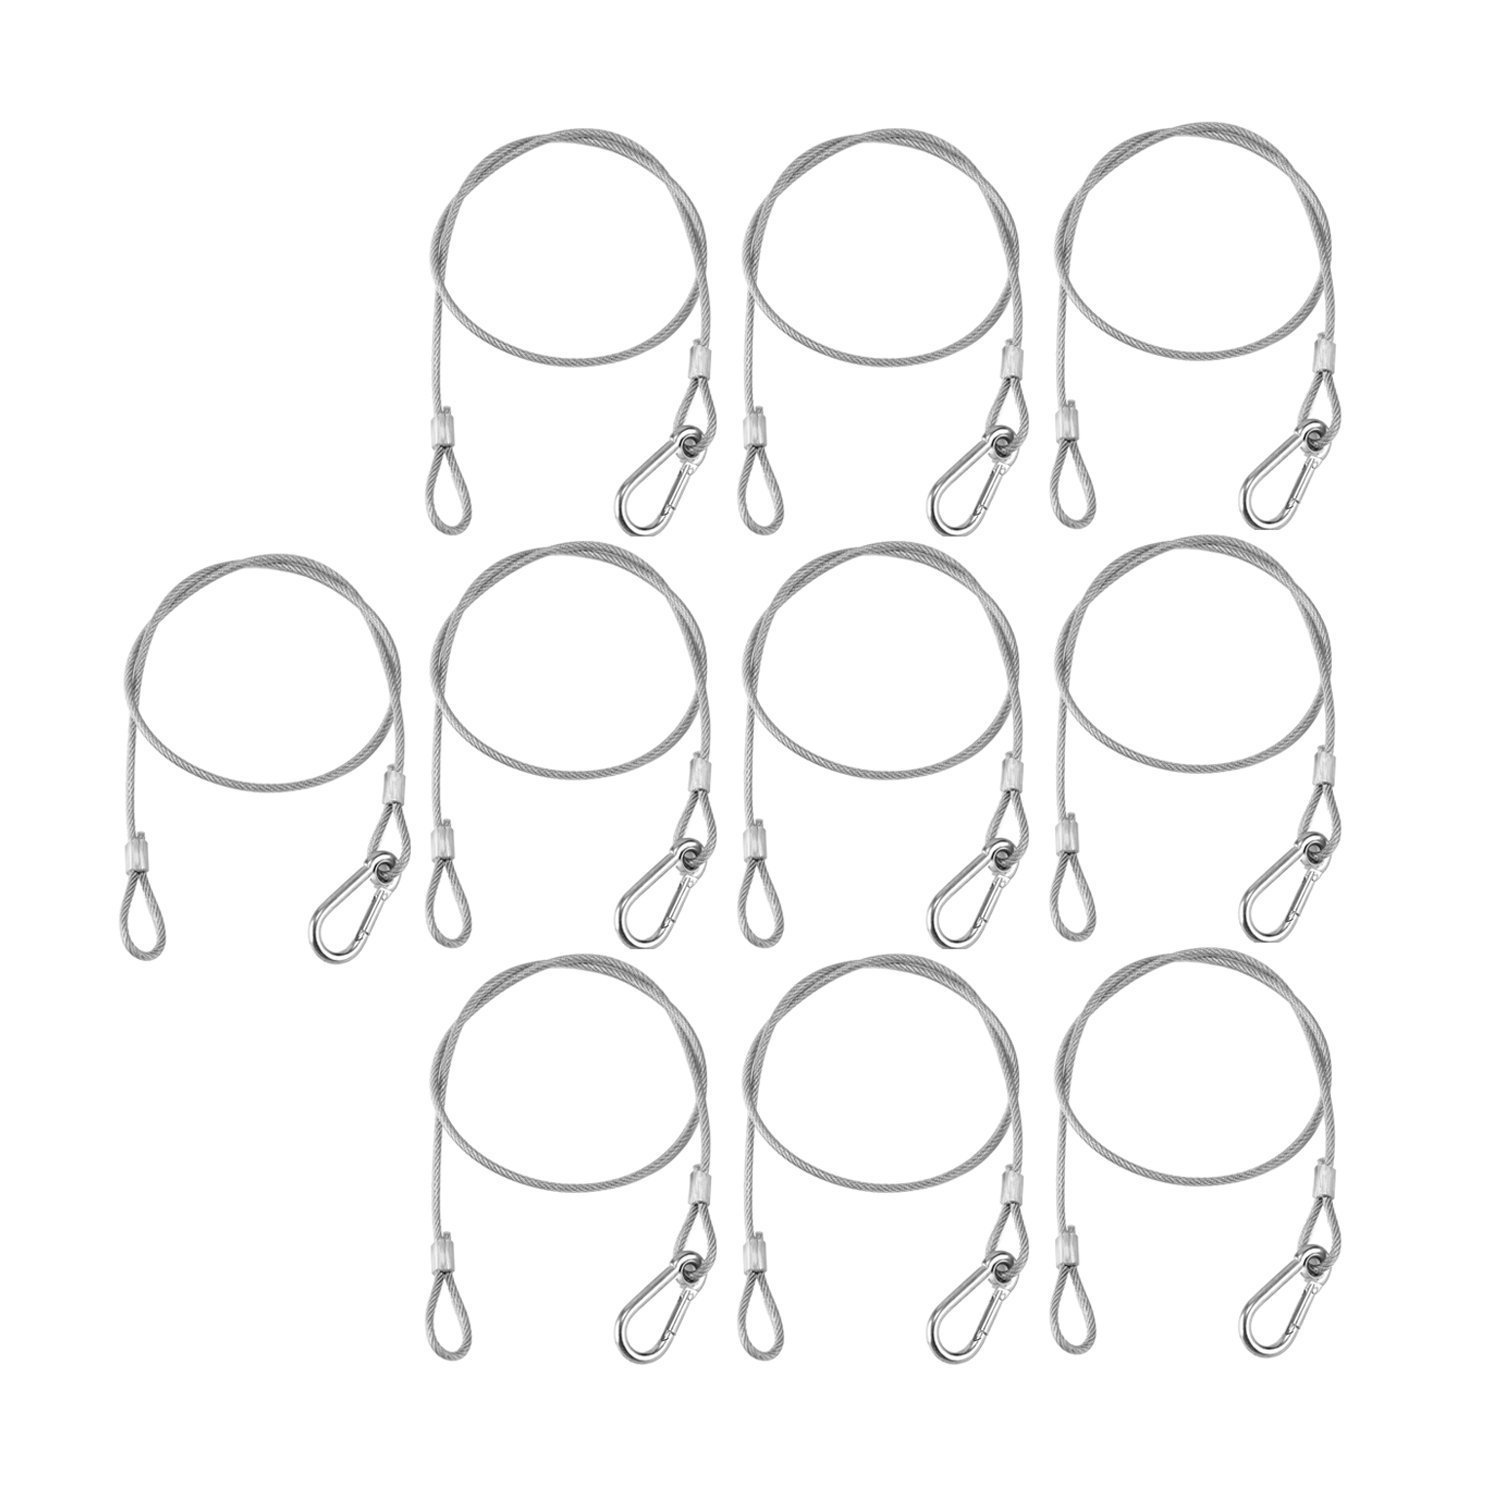 Max 110 Pound Bayyee 25.5 Stainless Steel Safety Security Cable for Dj Stage Lighting Par Light Moving Head Light Silver 10 Pack